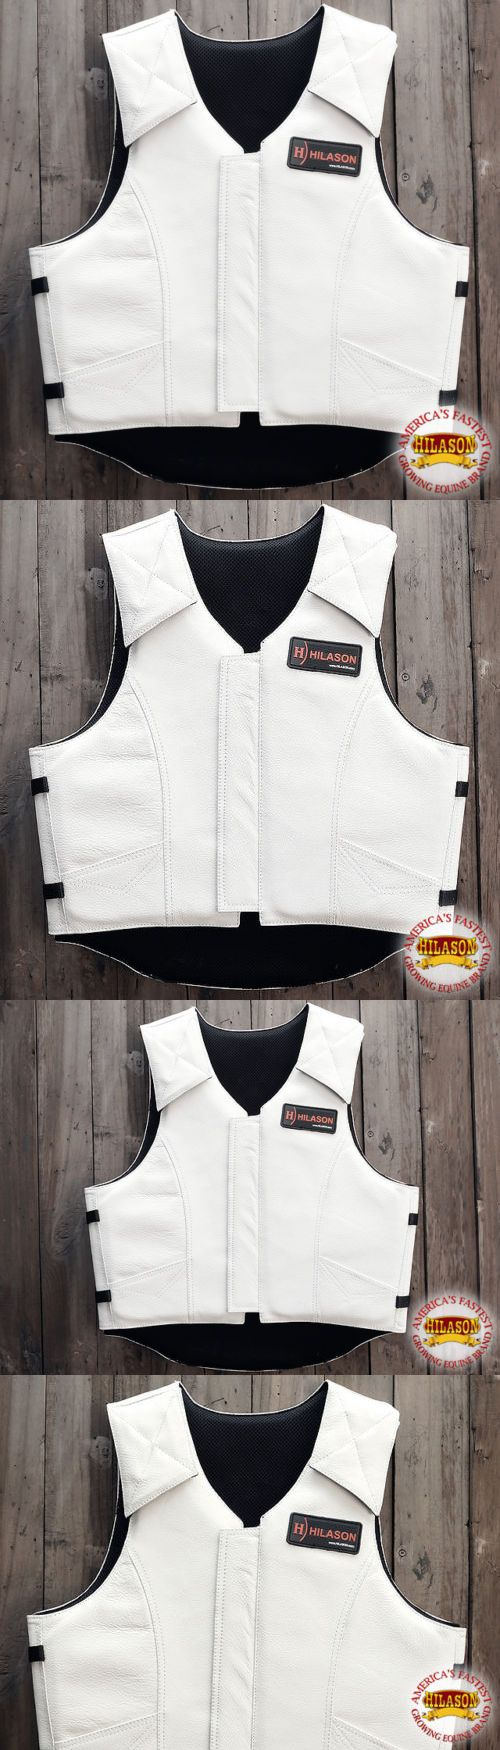 Other Protective Gear 87446: Pv800nd-F Hilason Leather Bareback Pro Rodeo Horse Riding Protective Vest Xlrg -> BUY IT NOW ONLY: $164.99 on eBay!